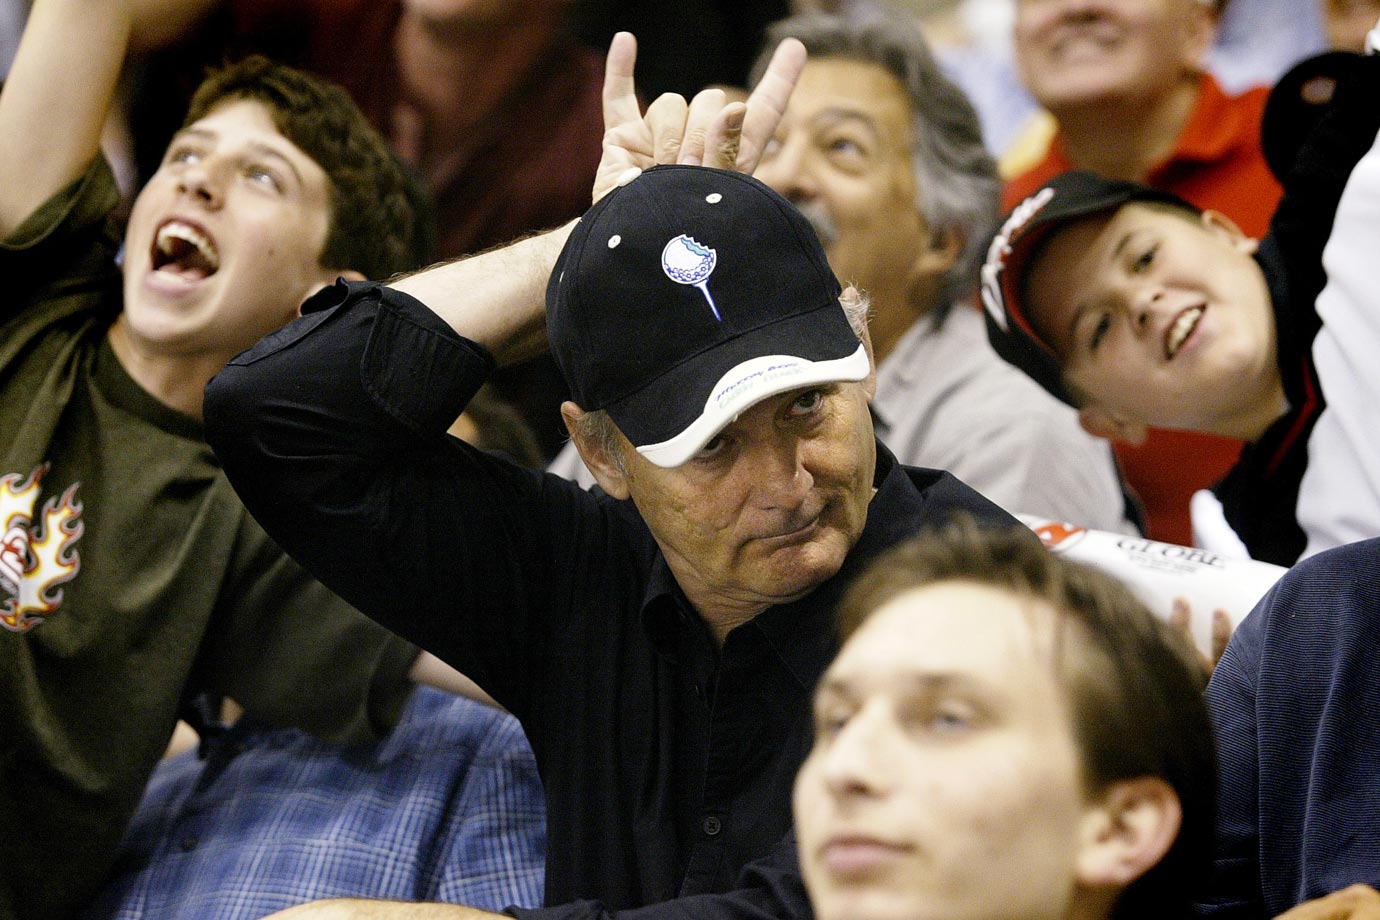 Bill Murray gives the Devils sign as he watches Game 7 of the 2003 Stanley Cup Final between the New Jersey Devils and the Mighty Ducks of Anaheim on June 9, 2003